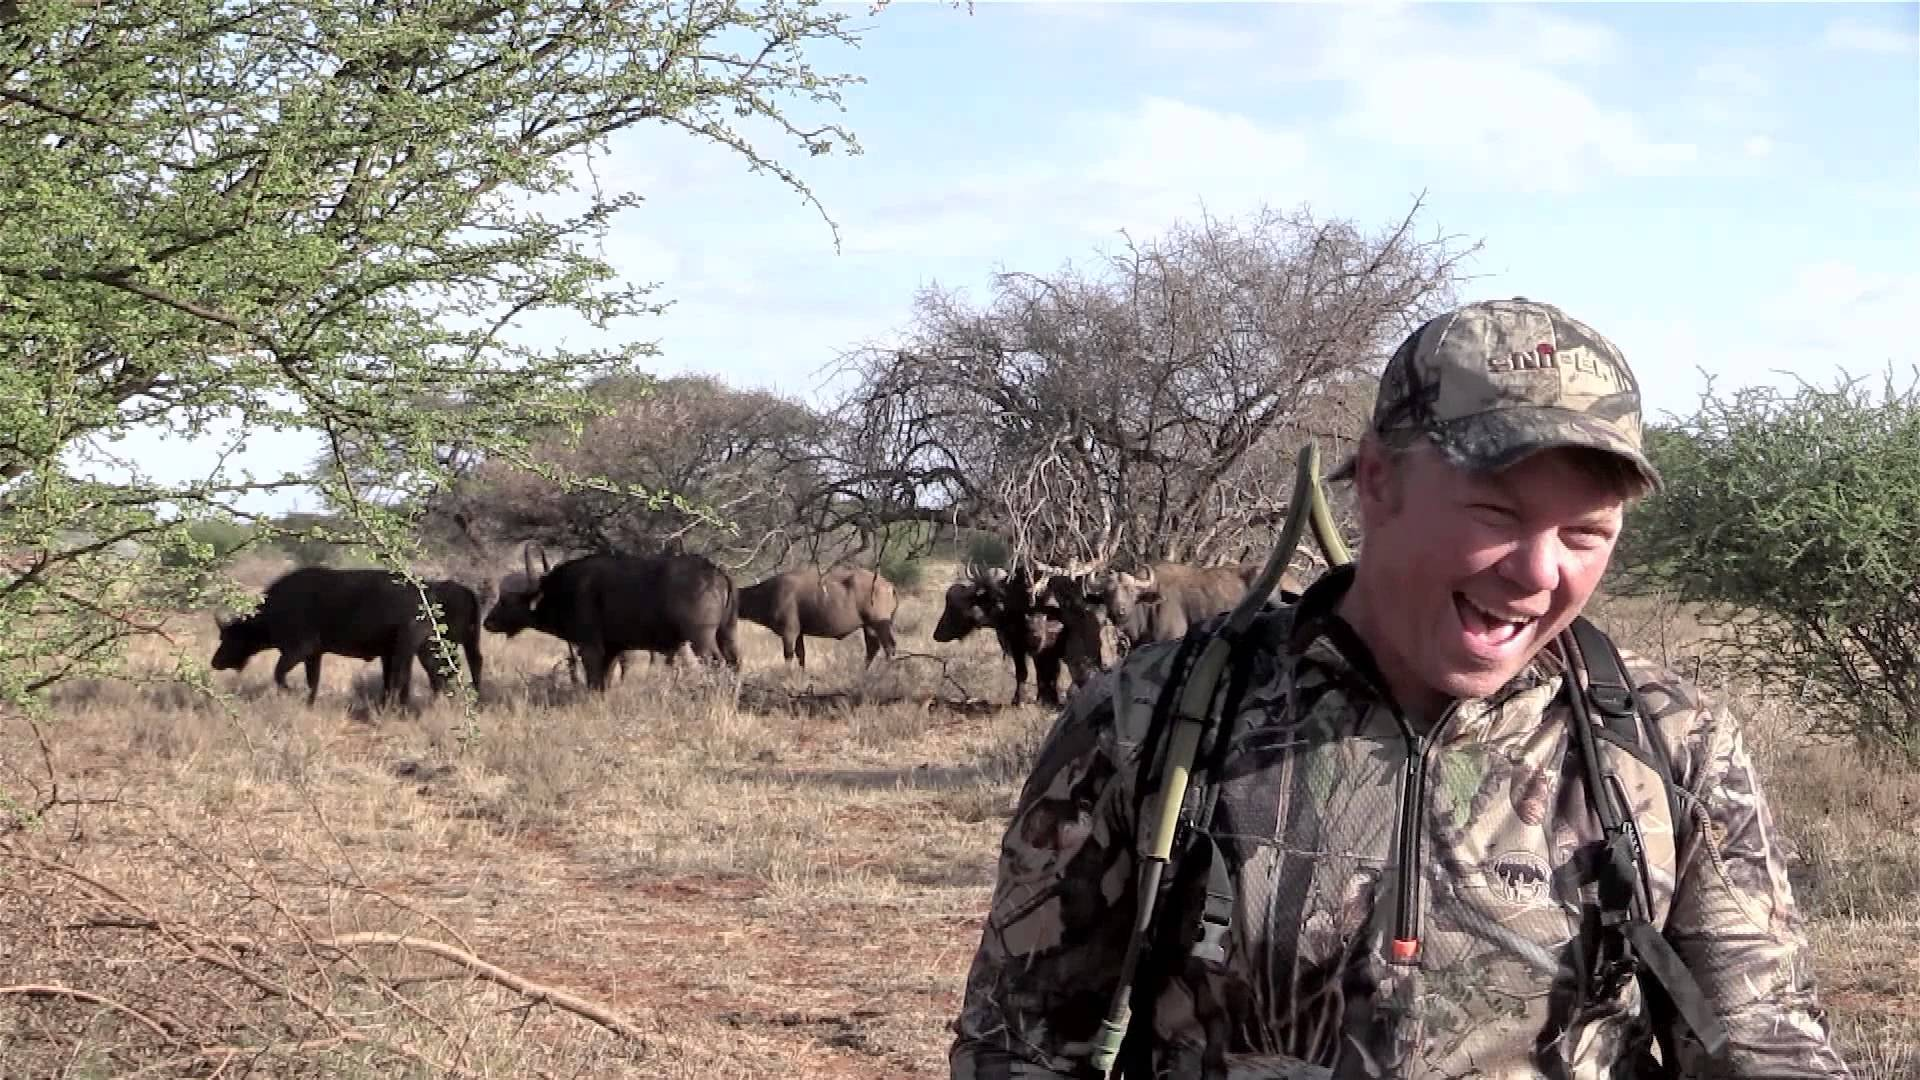 Fieldsports Africa guy launches hunting business